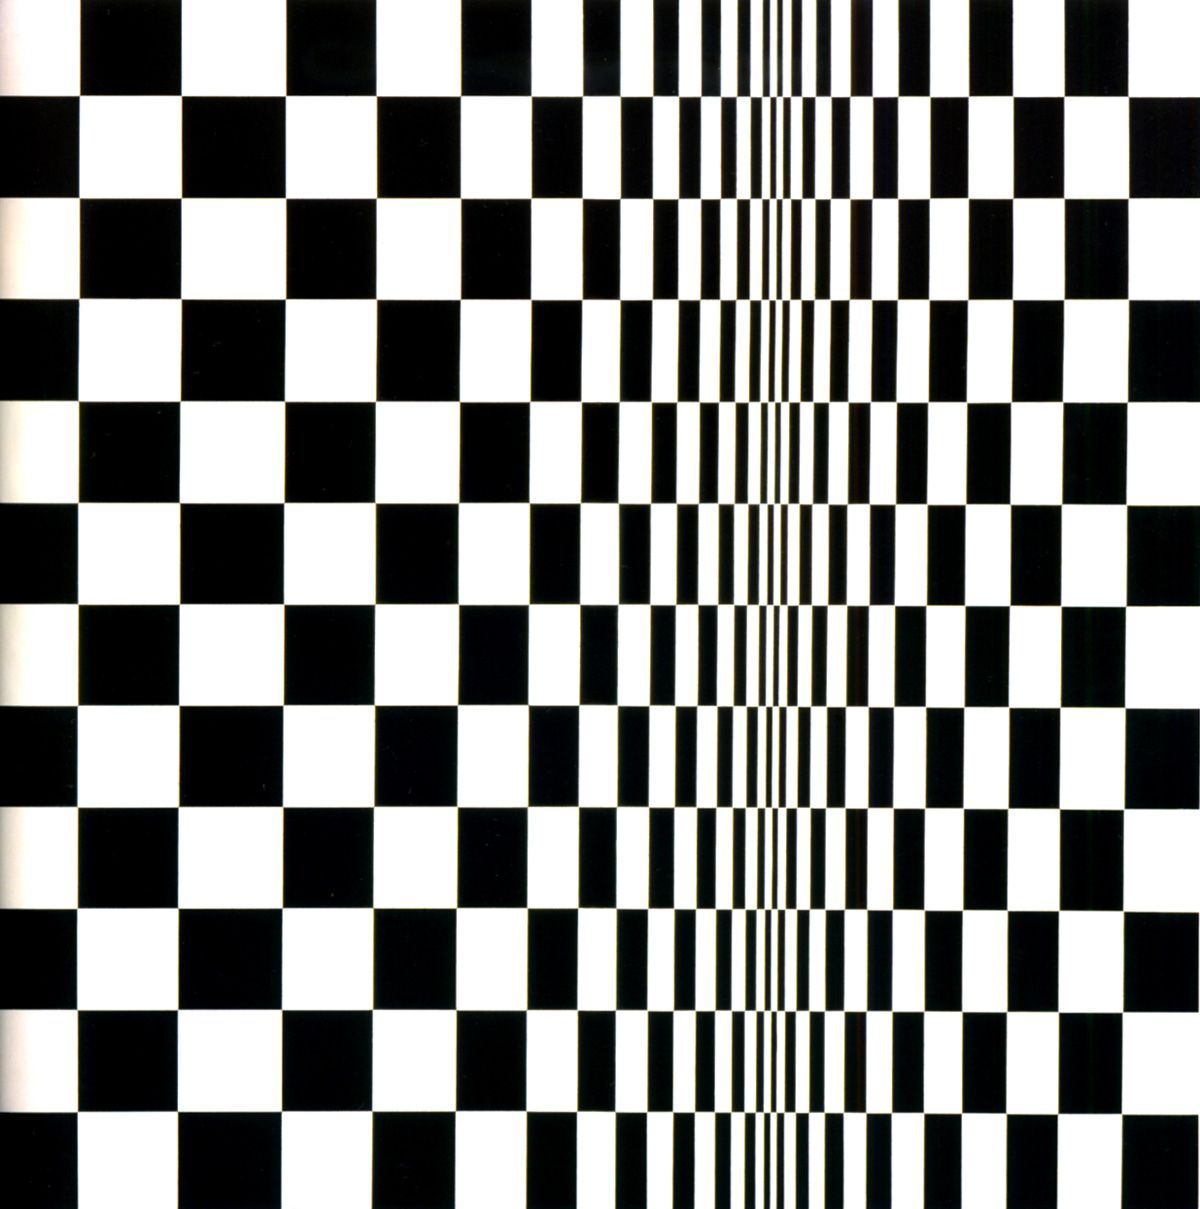 http://idata.over-blog.com/2/53/16/26/ART-ARCHITECTURE/Bridget-Riley-Movement-G.jpg